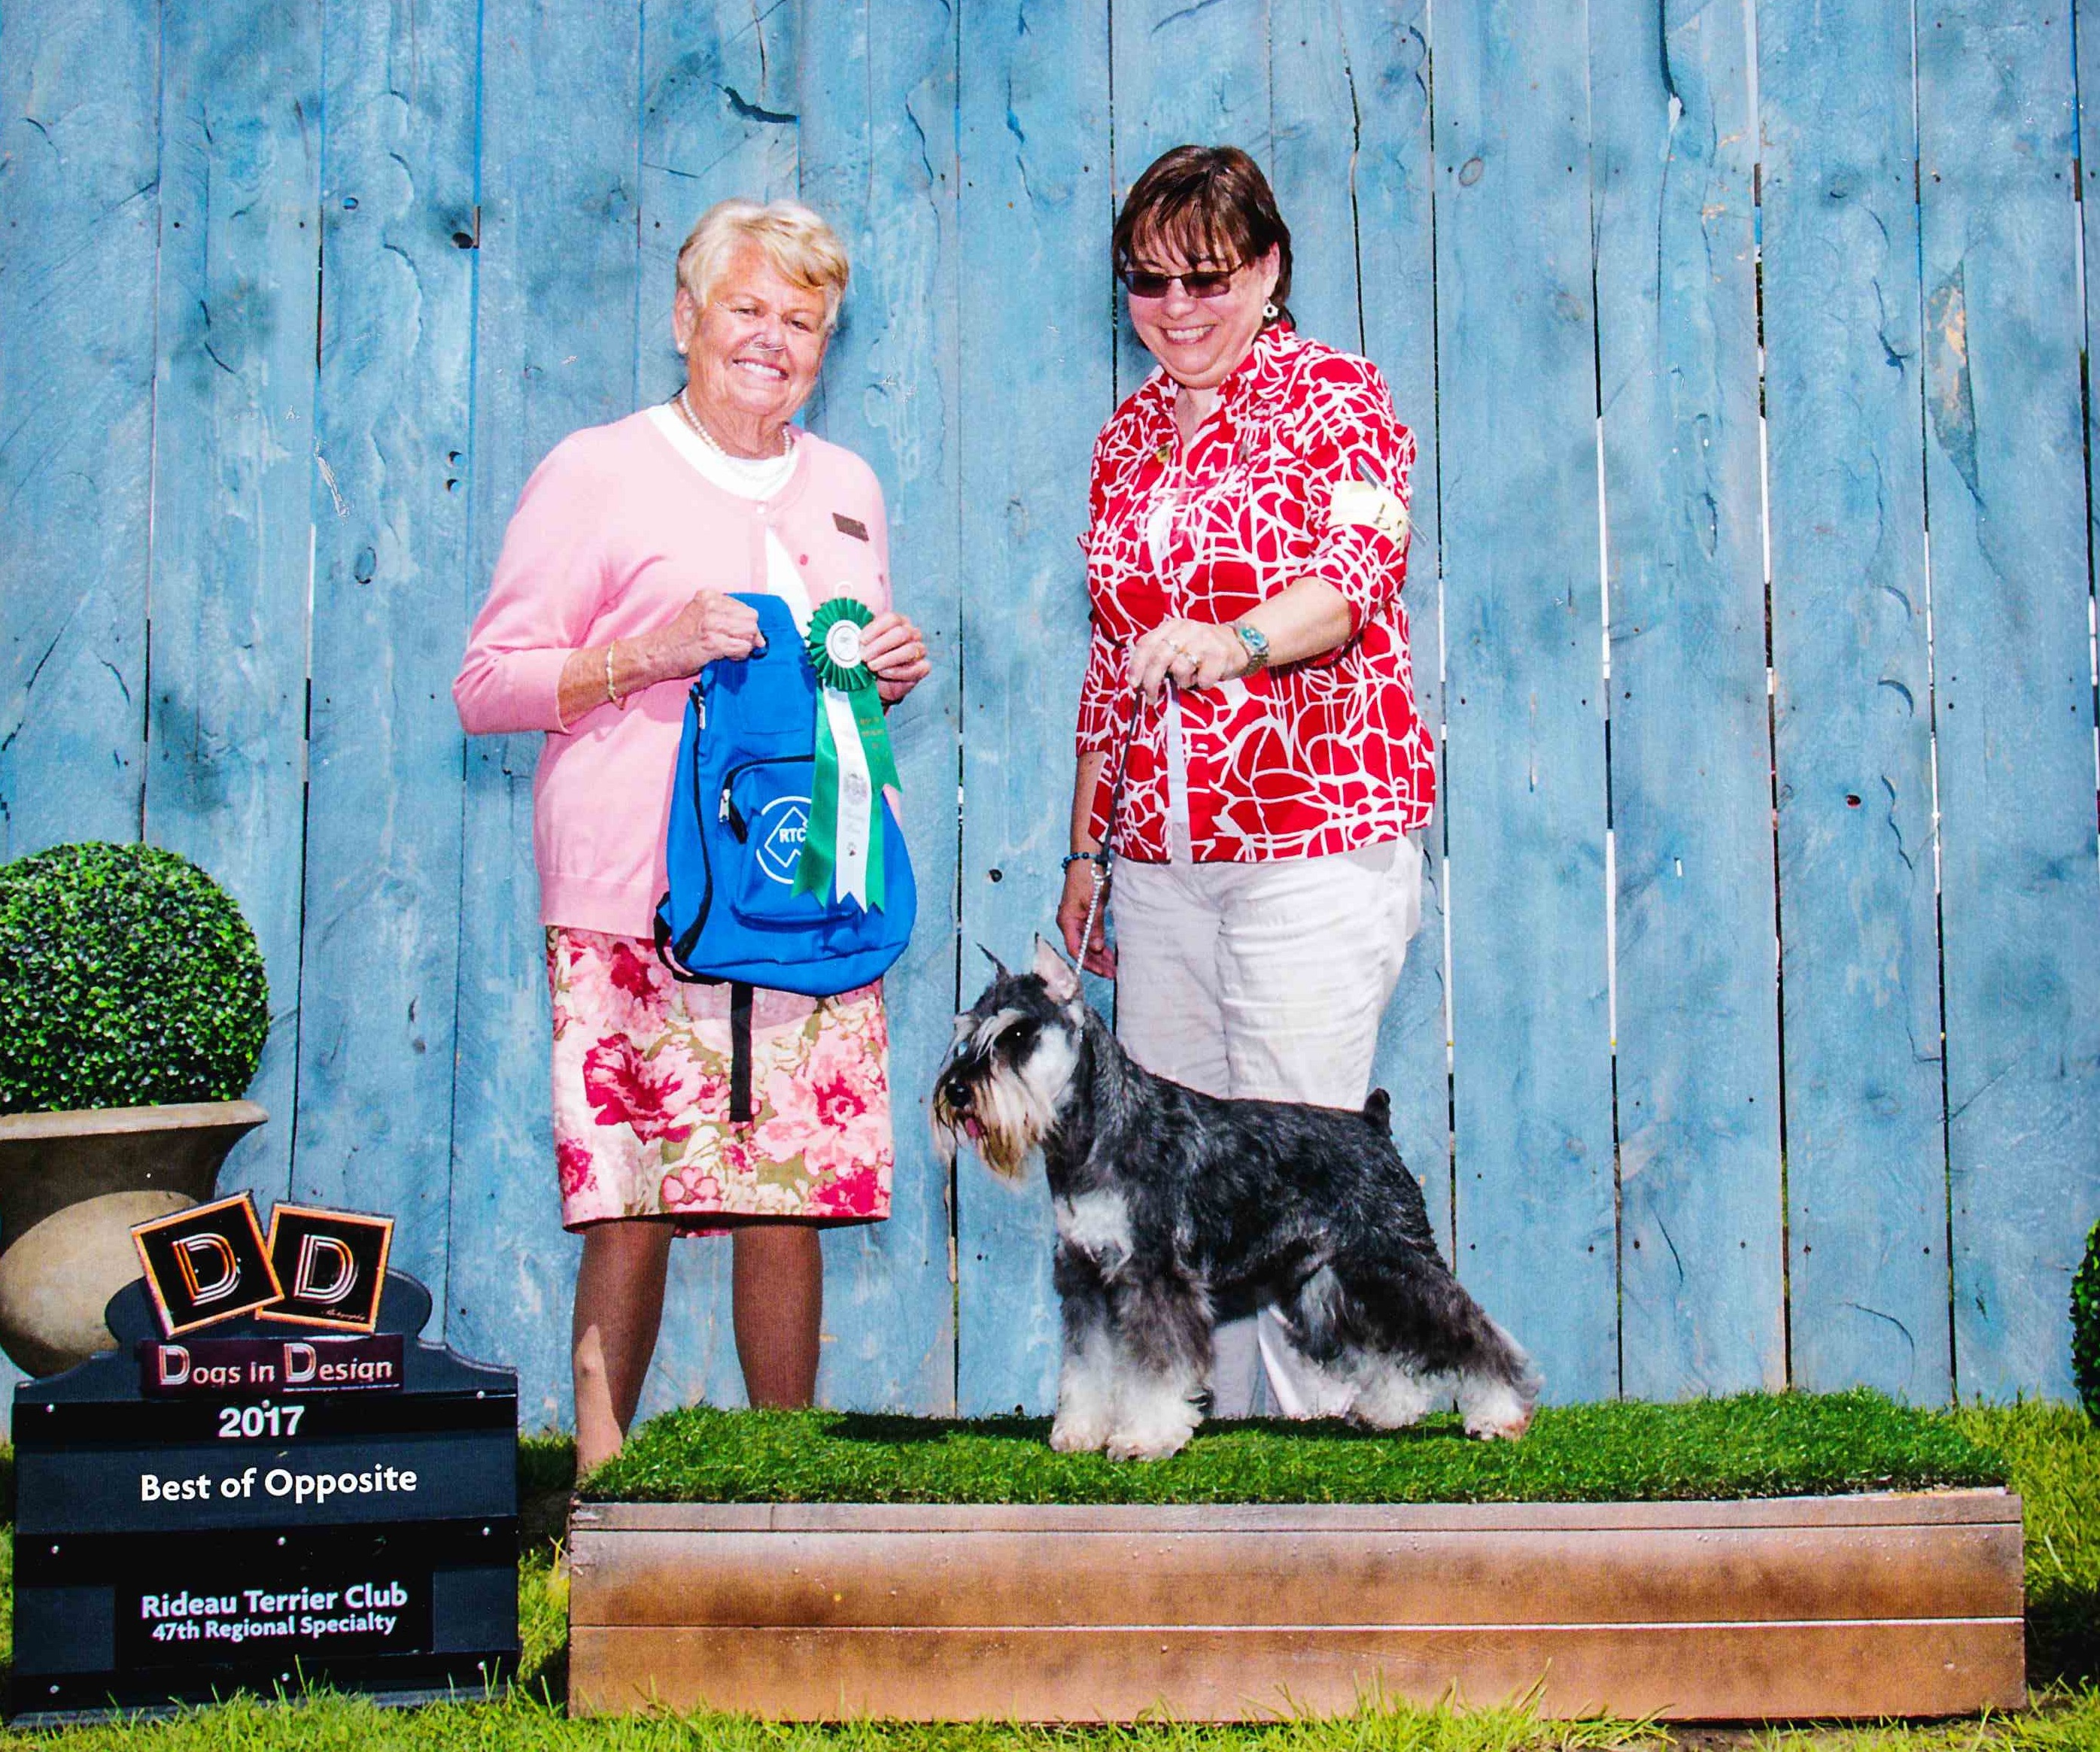 Our King wins Best of Opposite at Rideau Terrier Specialty!